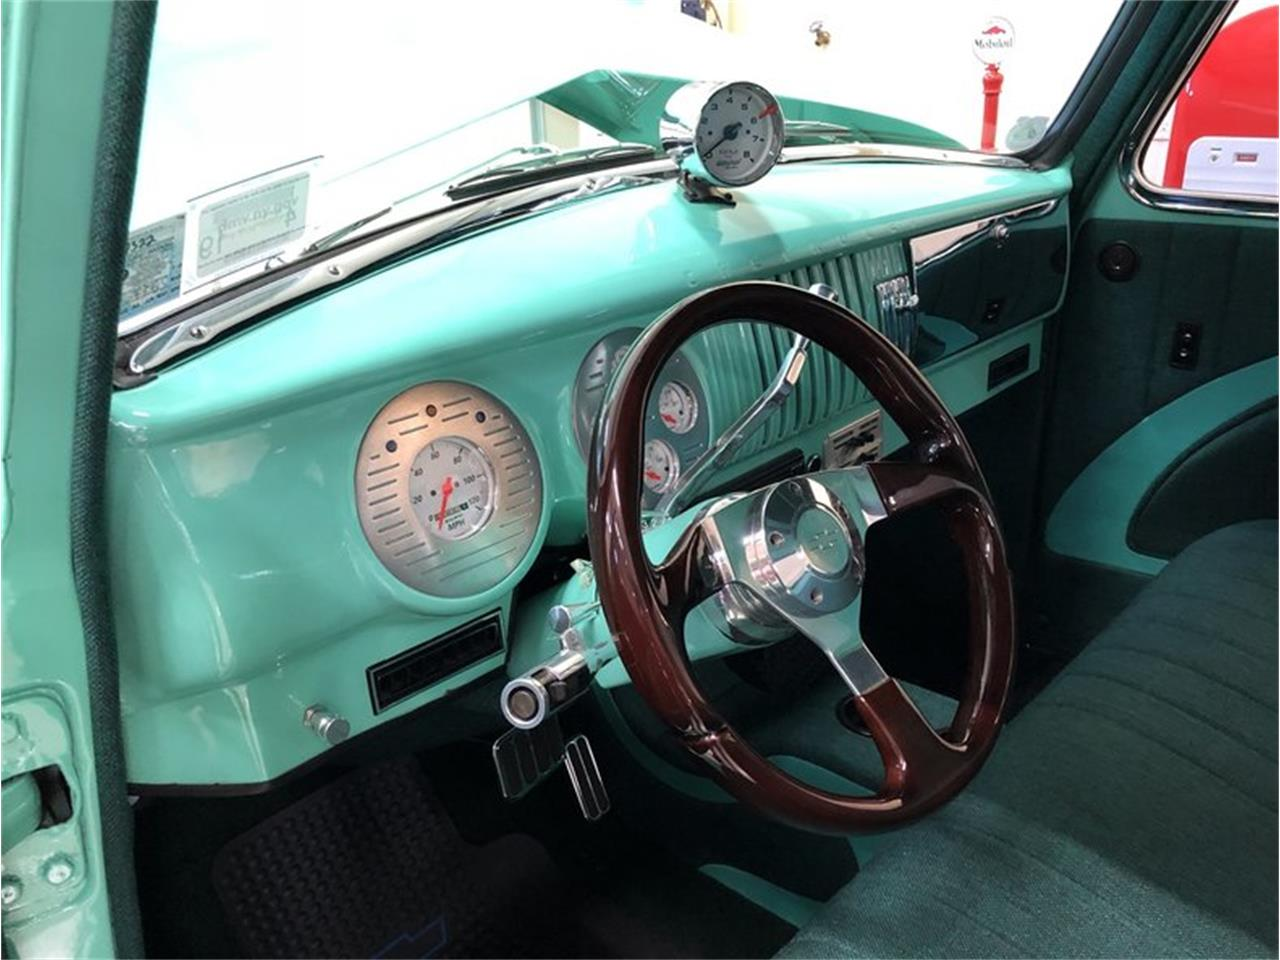 1954 Chevrolet 1 1 2 Ton Pickup For Sale Classiccars Com